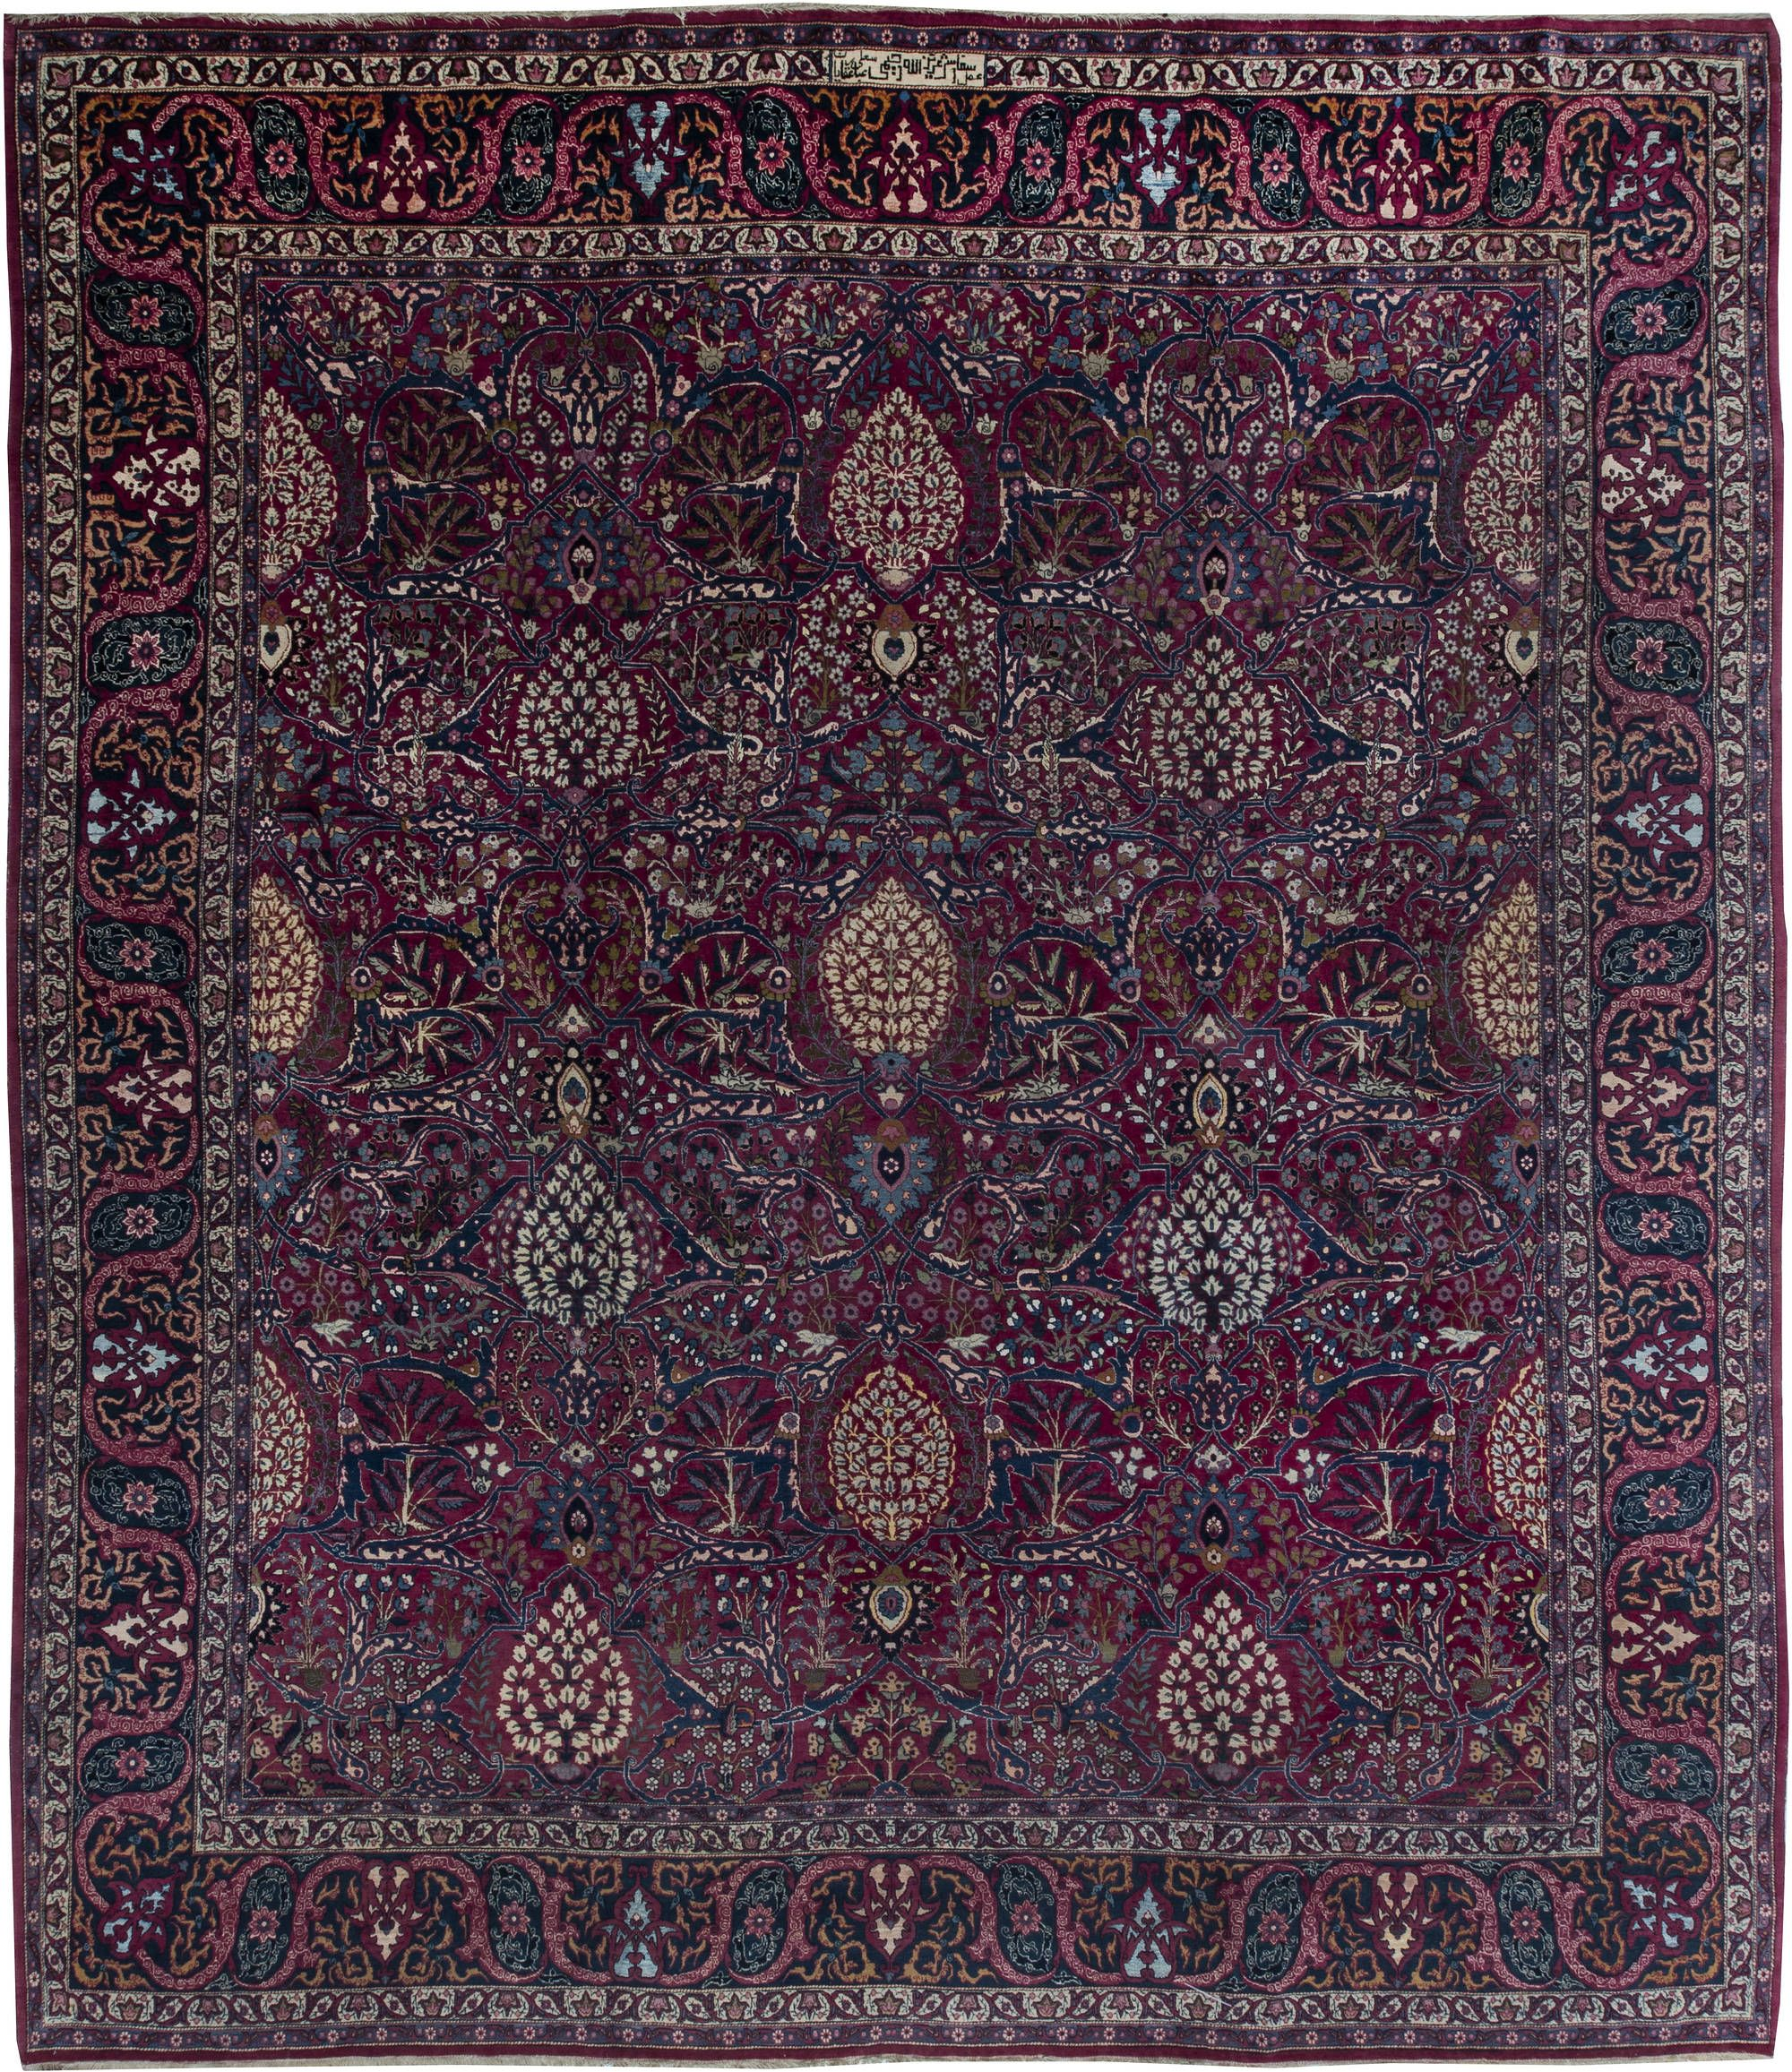 antique and vintage rugs, custom carpets by dlb new york city